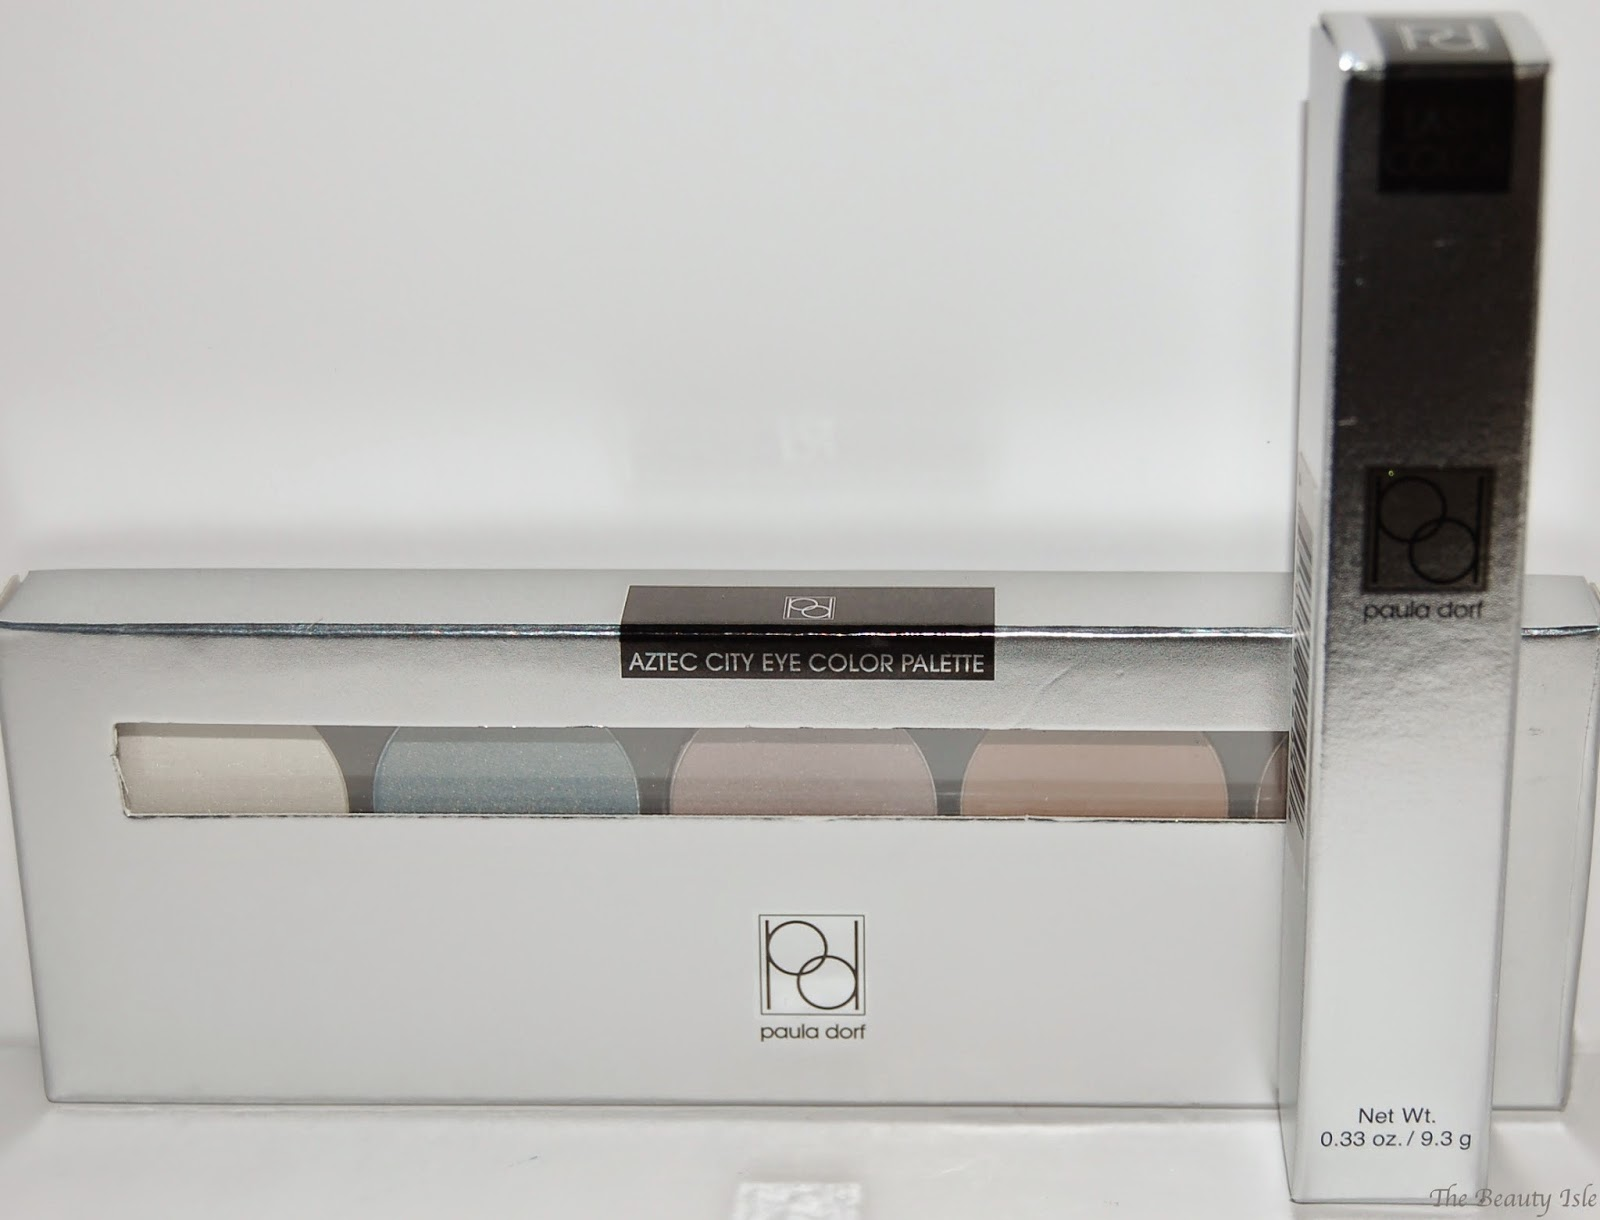 Paula Dorf Aztec City Eyeshadow Pallete